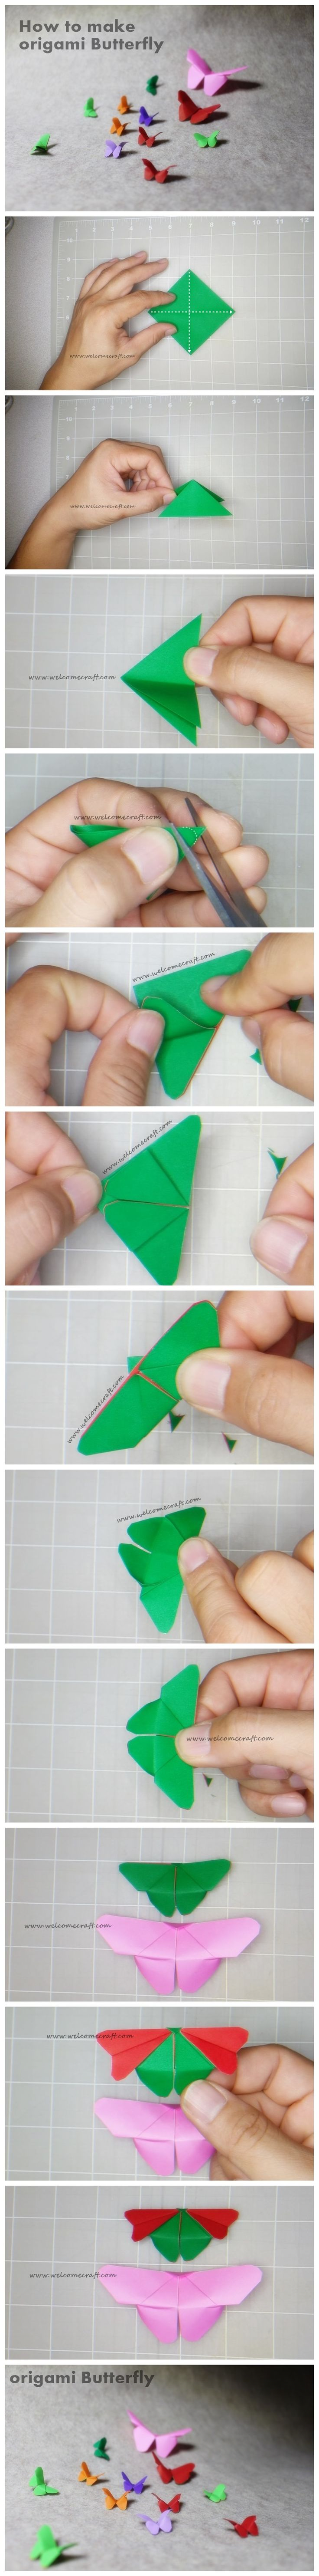 How to make origami butterfly DIY step by step tutorial instruction. ... Isn't this lovely? See more awesome stuff at http://craftorganizer.org